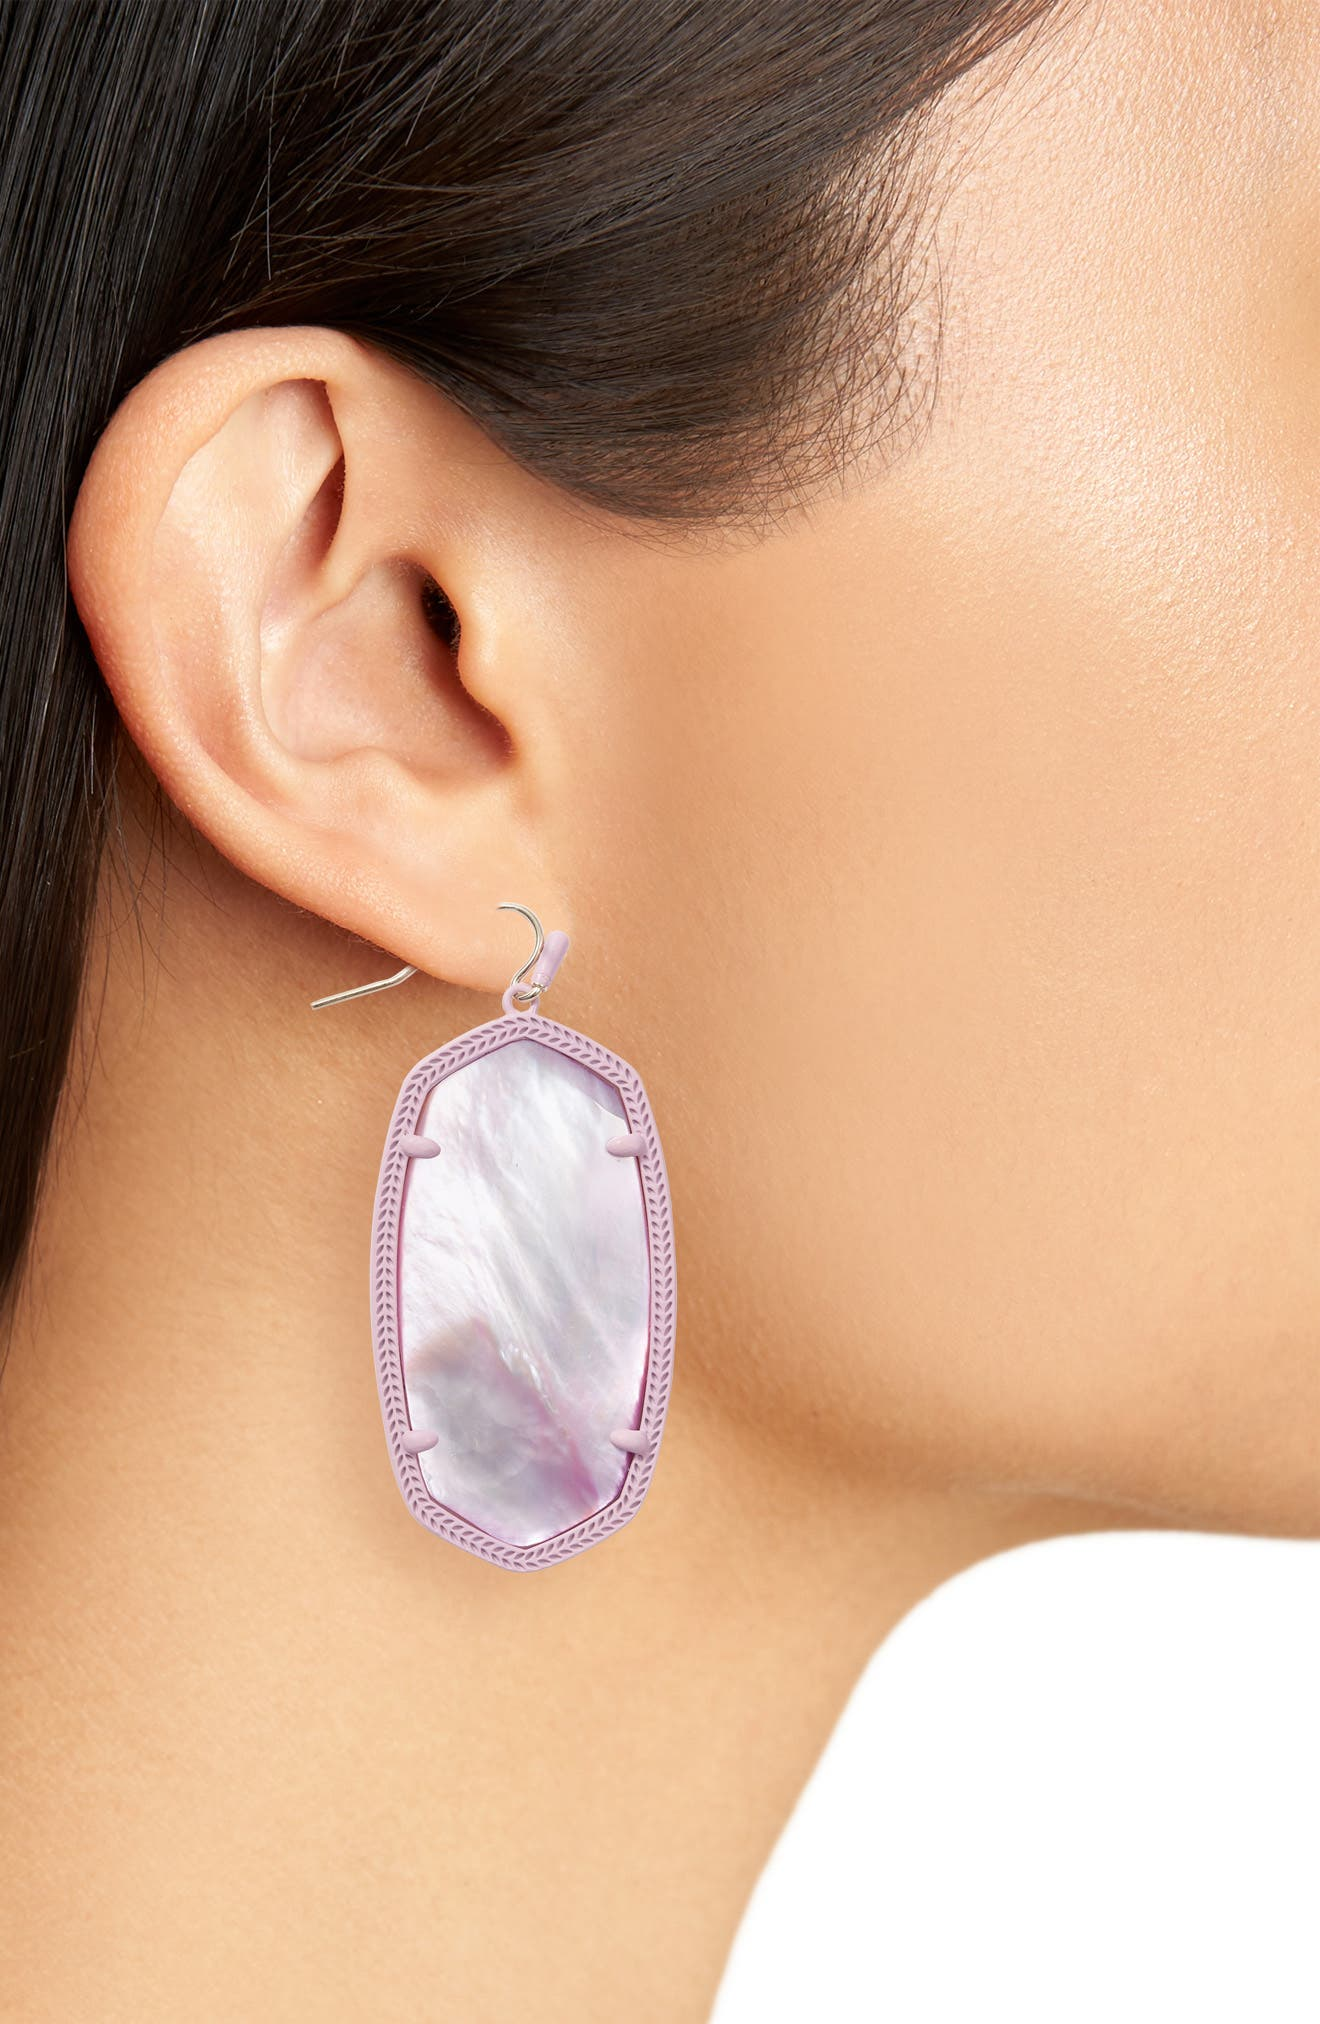 Danielle - Large Oval Statement Earrings,                             Alternate thumbnail 110, color,